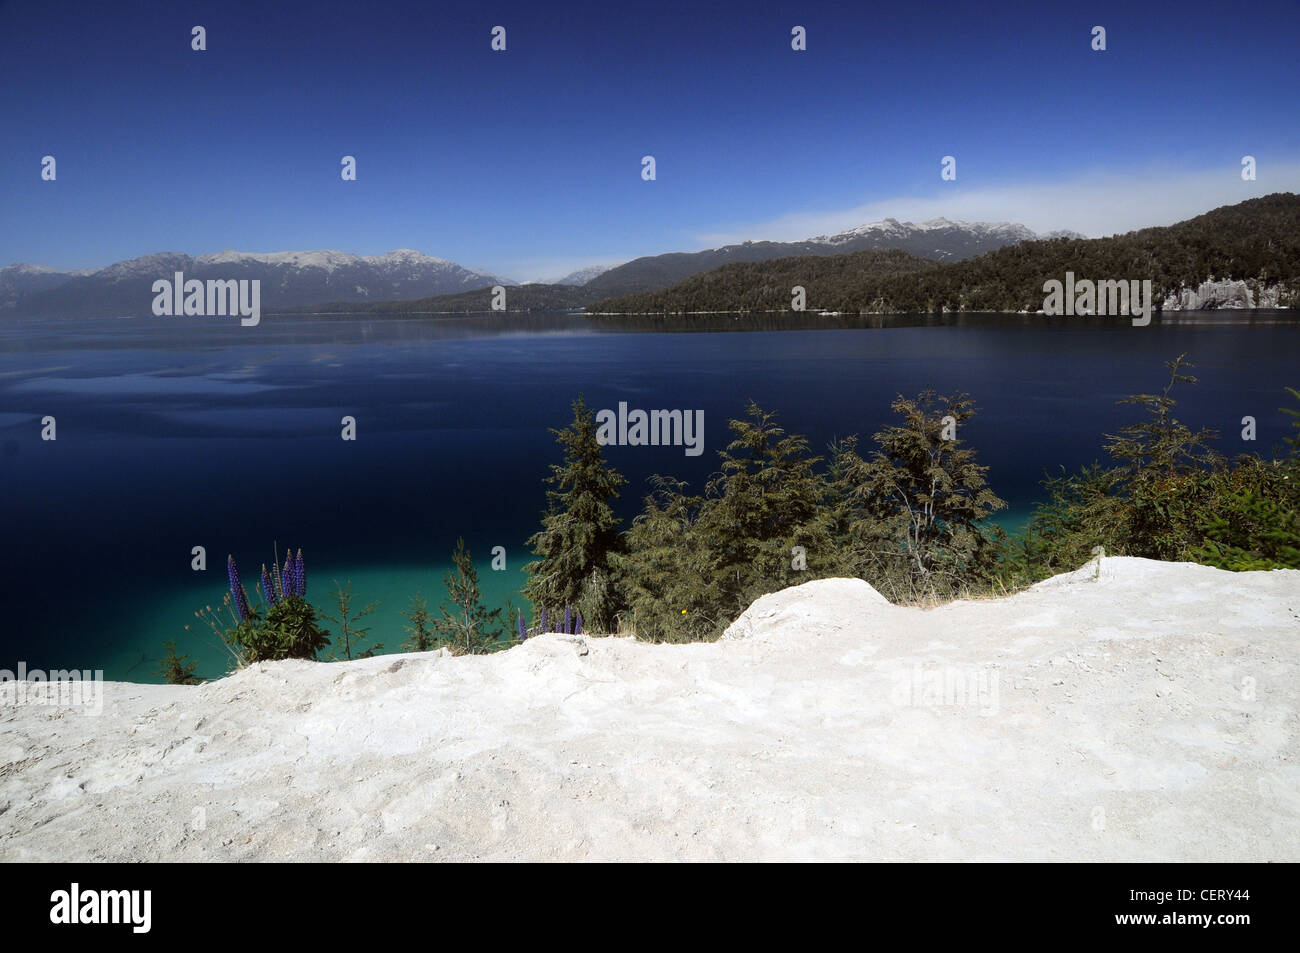 Ash on the shores of Lake Nahuel Huapi from eruptions of nearby Volcan Puyehue (plume visible on horizon), Patagonia, - Stock Image